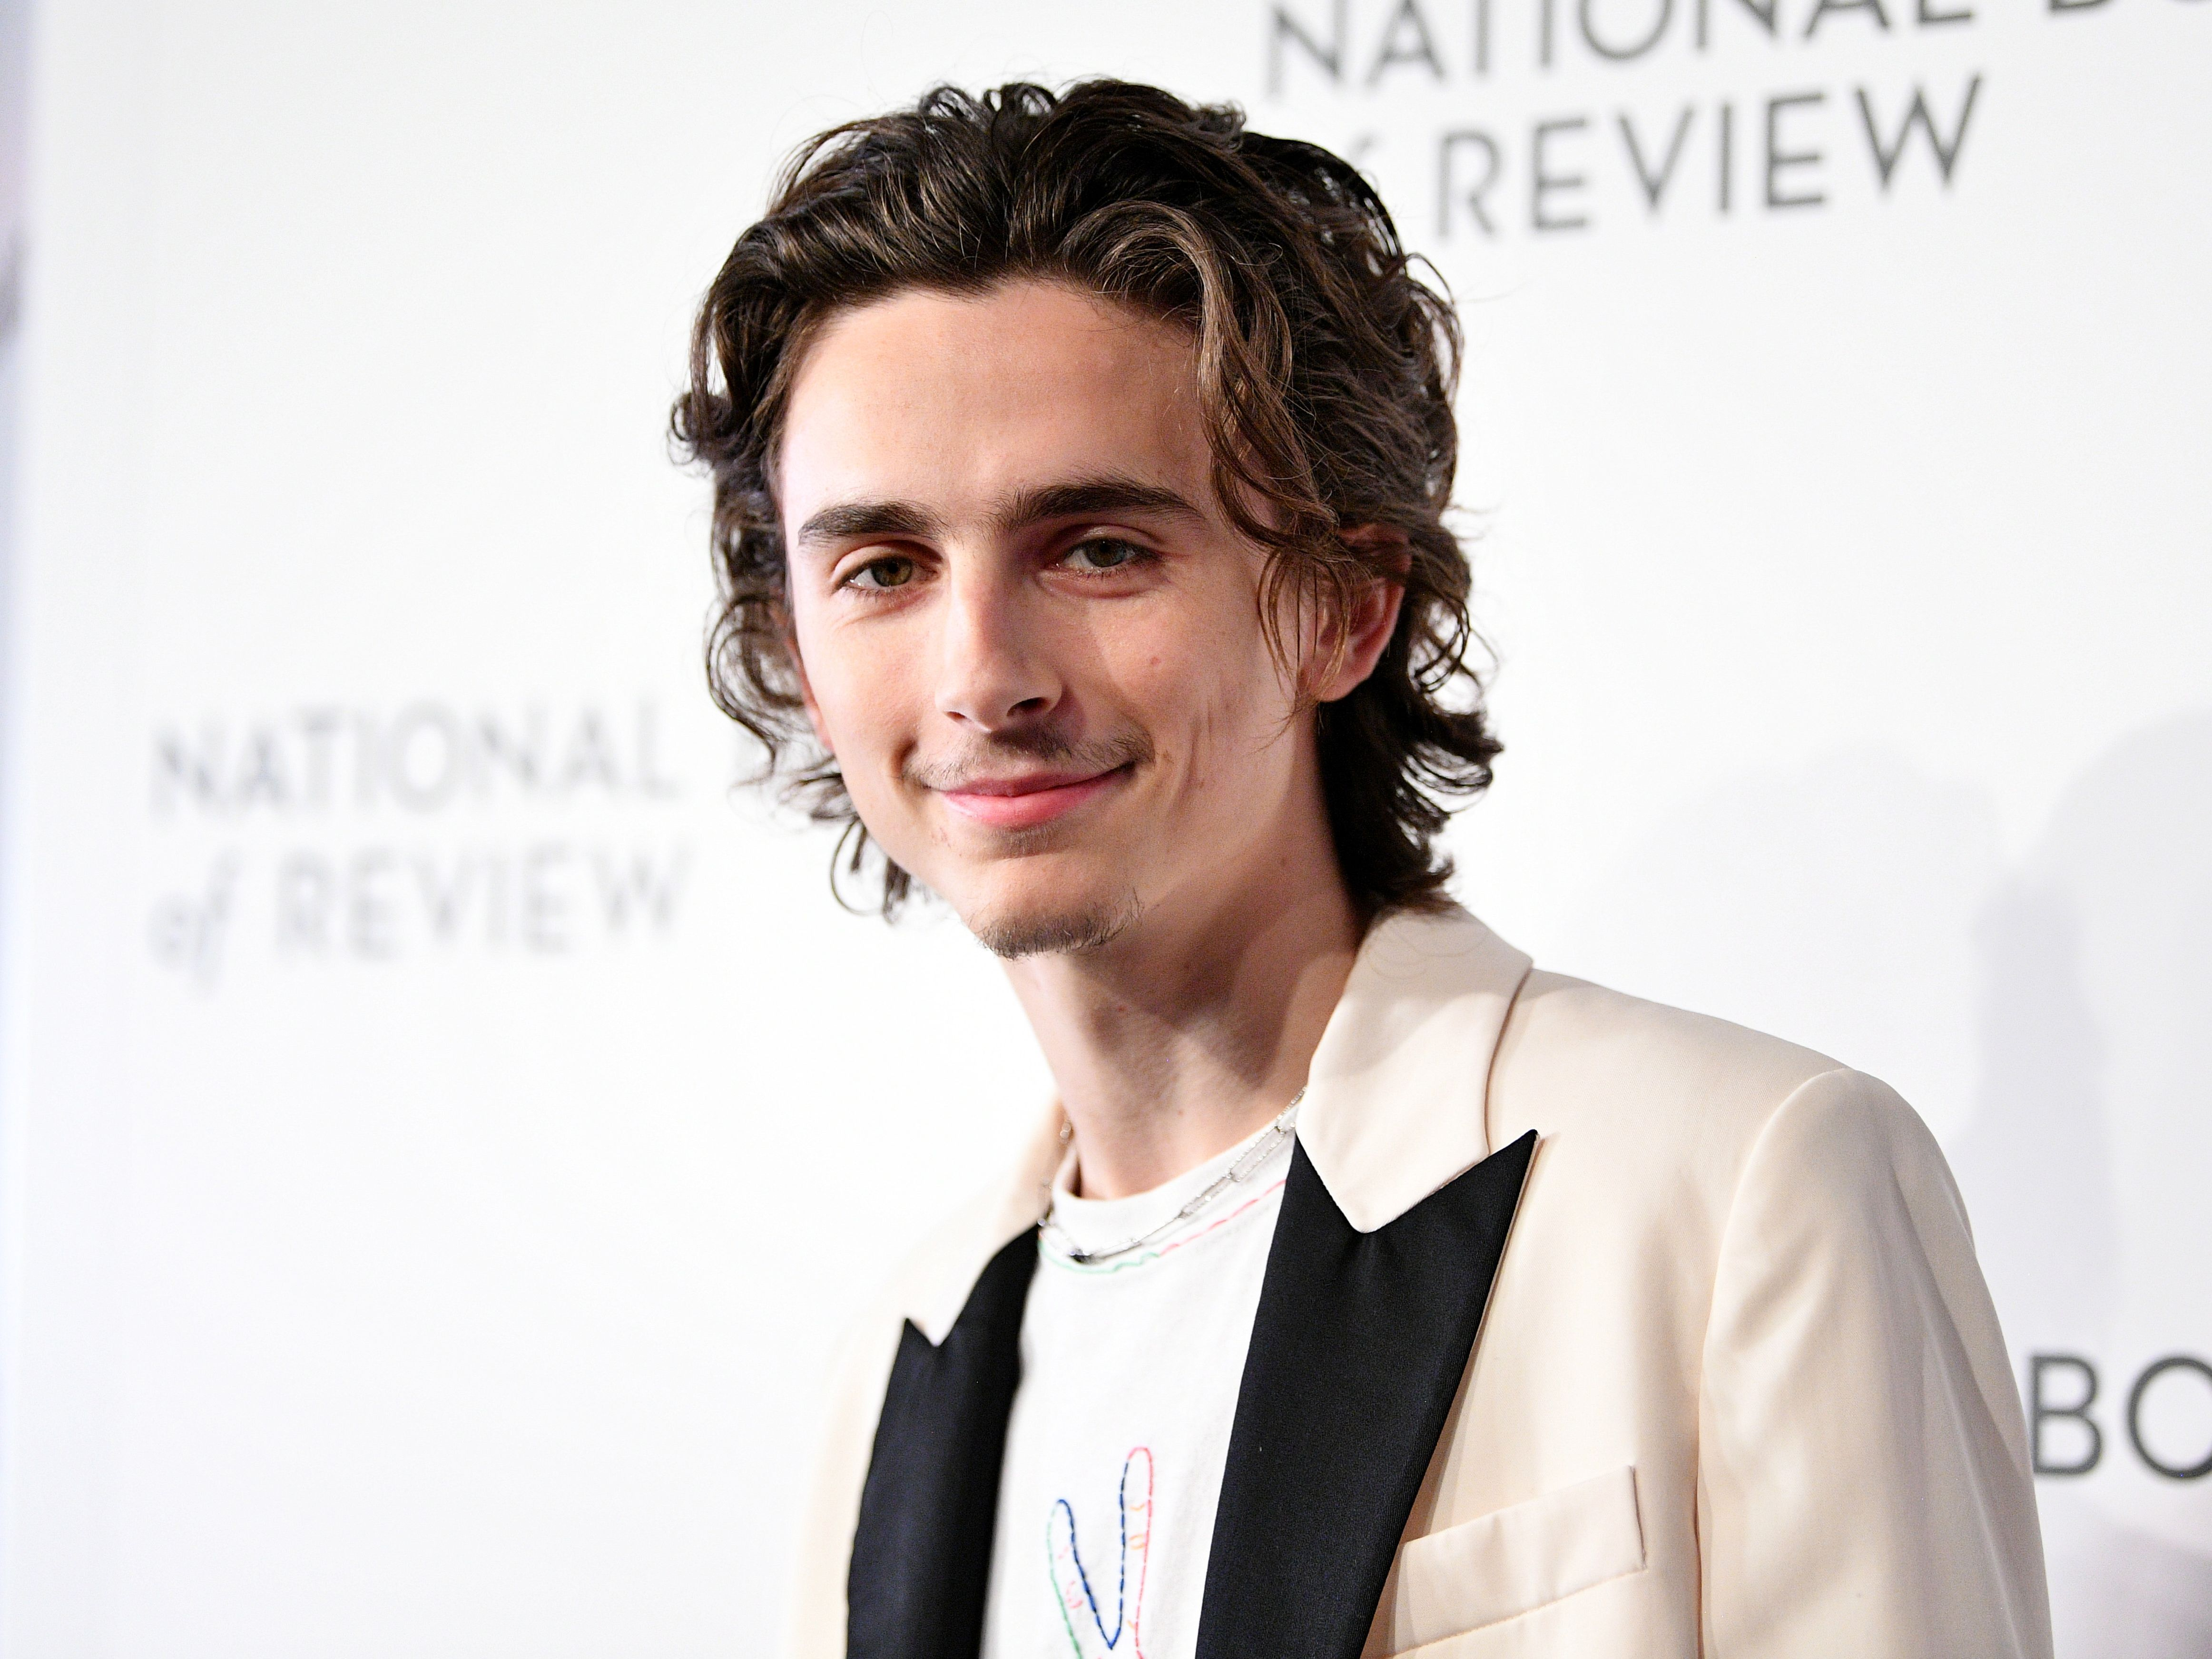 Timothee Chalamet S New Mustache Has Sparked A Hilarious Twitter Debate Mtv